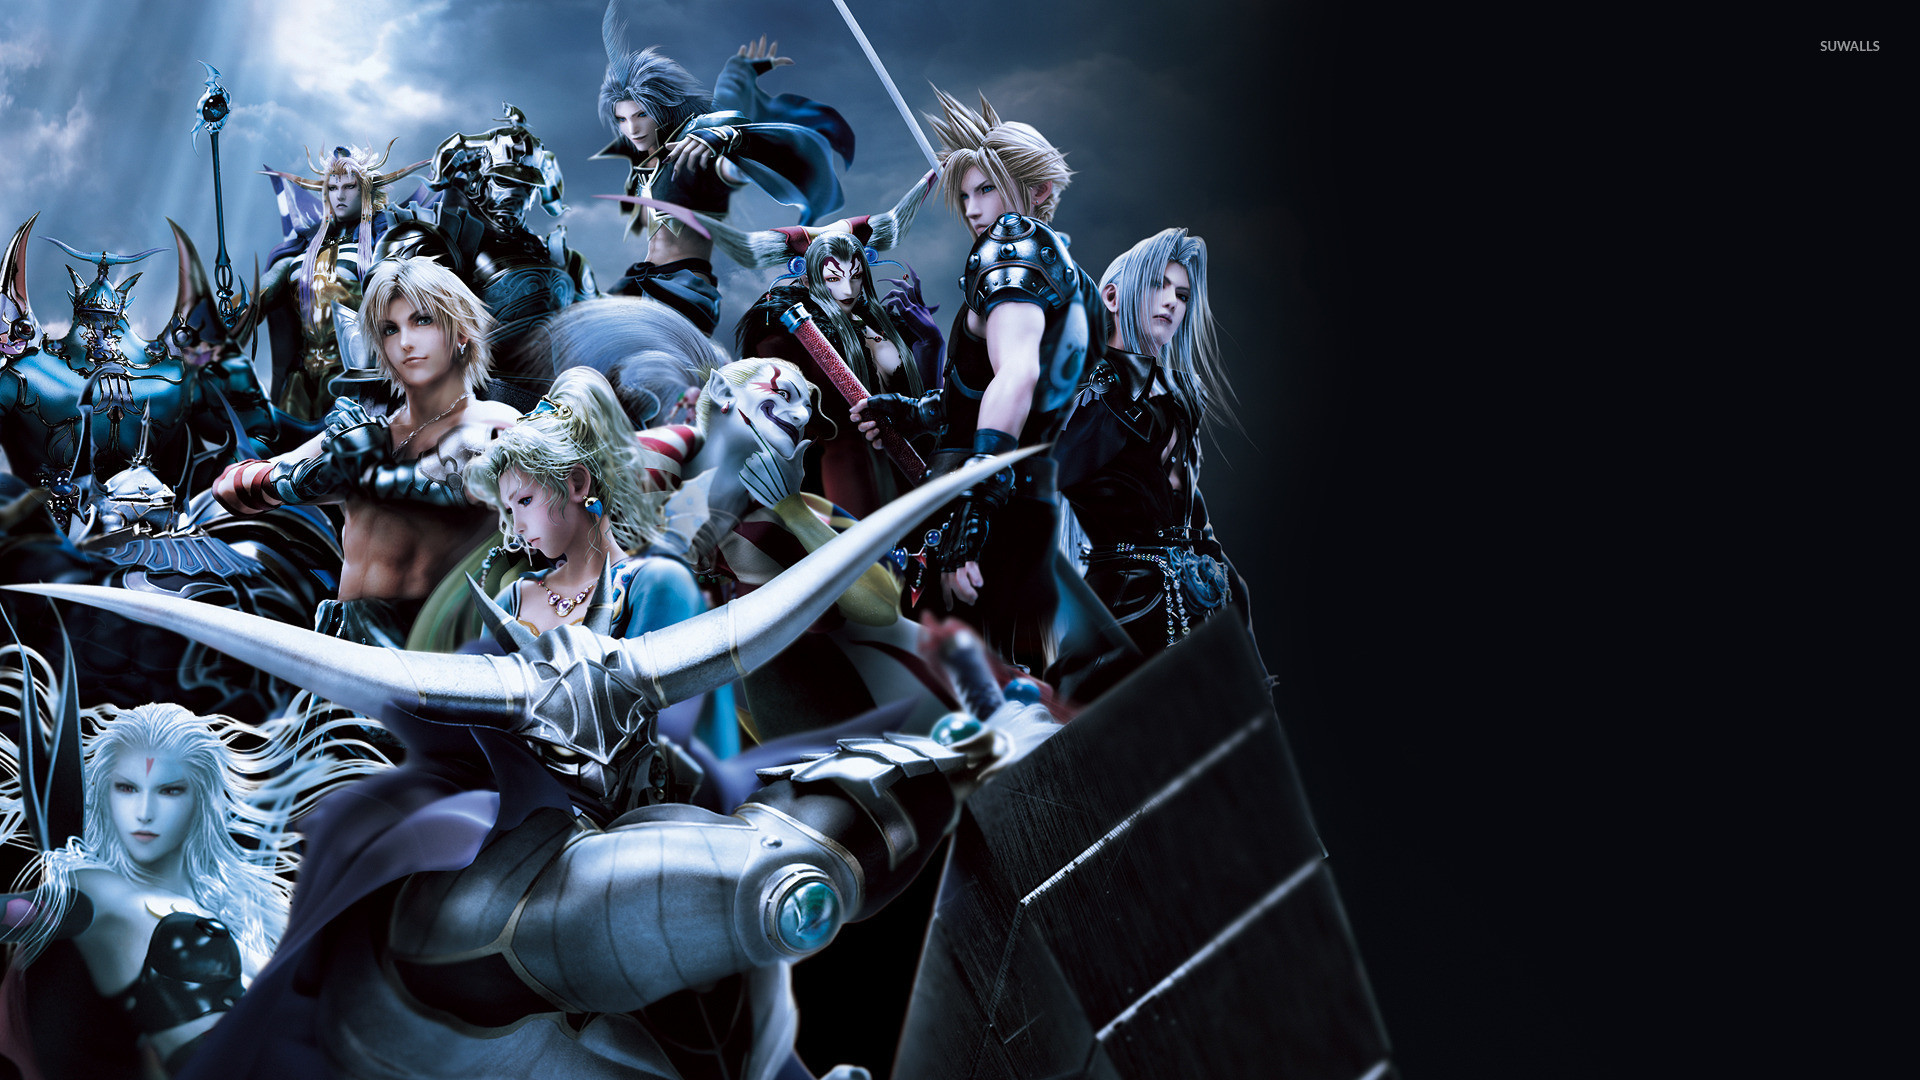 1920x1080 Dissidia Final Fantasy [3] wallpaper